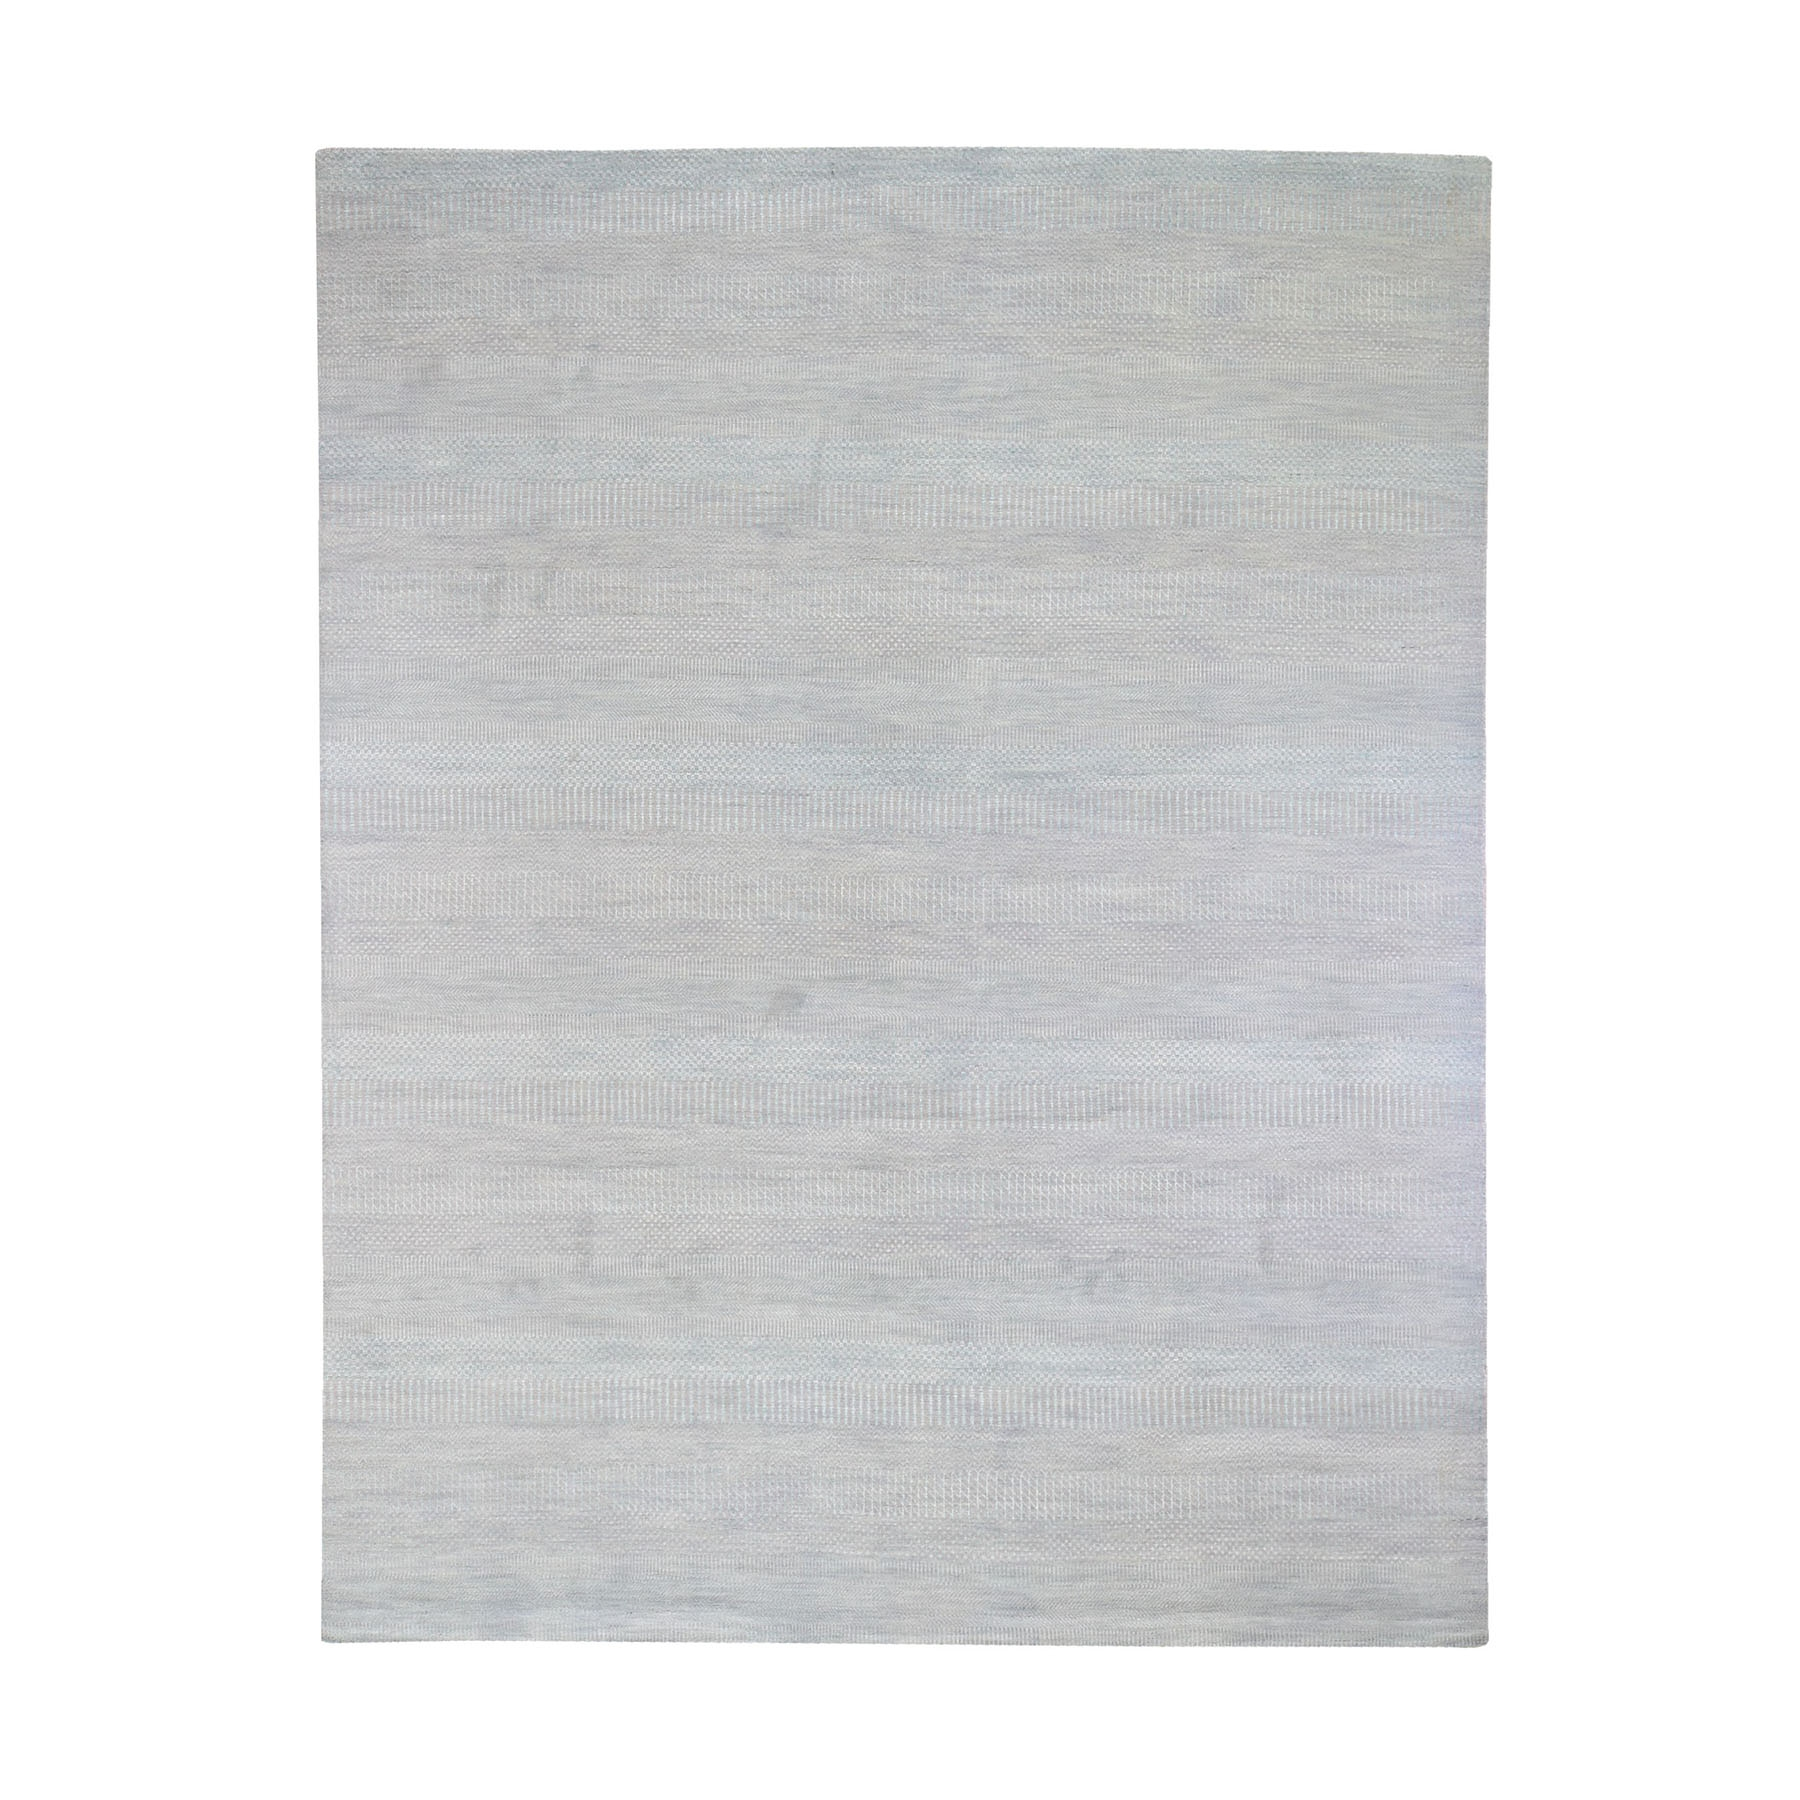 Modern & Contemporary Rugs LUV536418